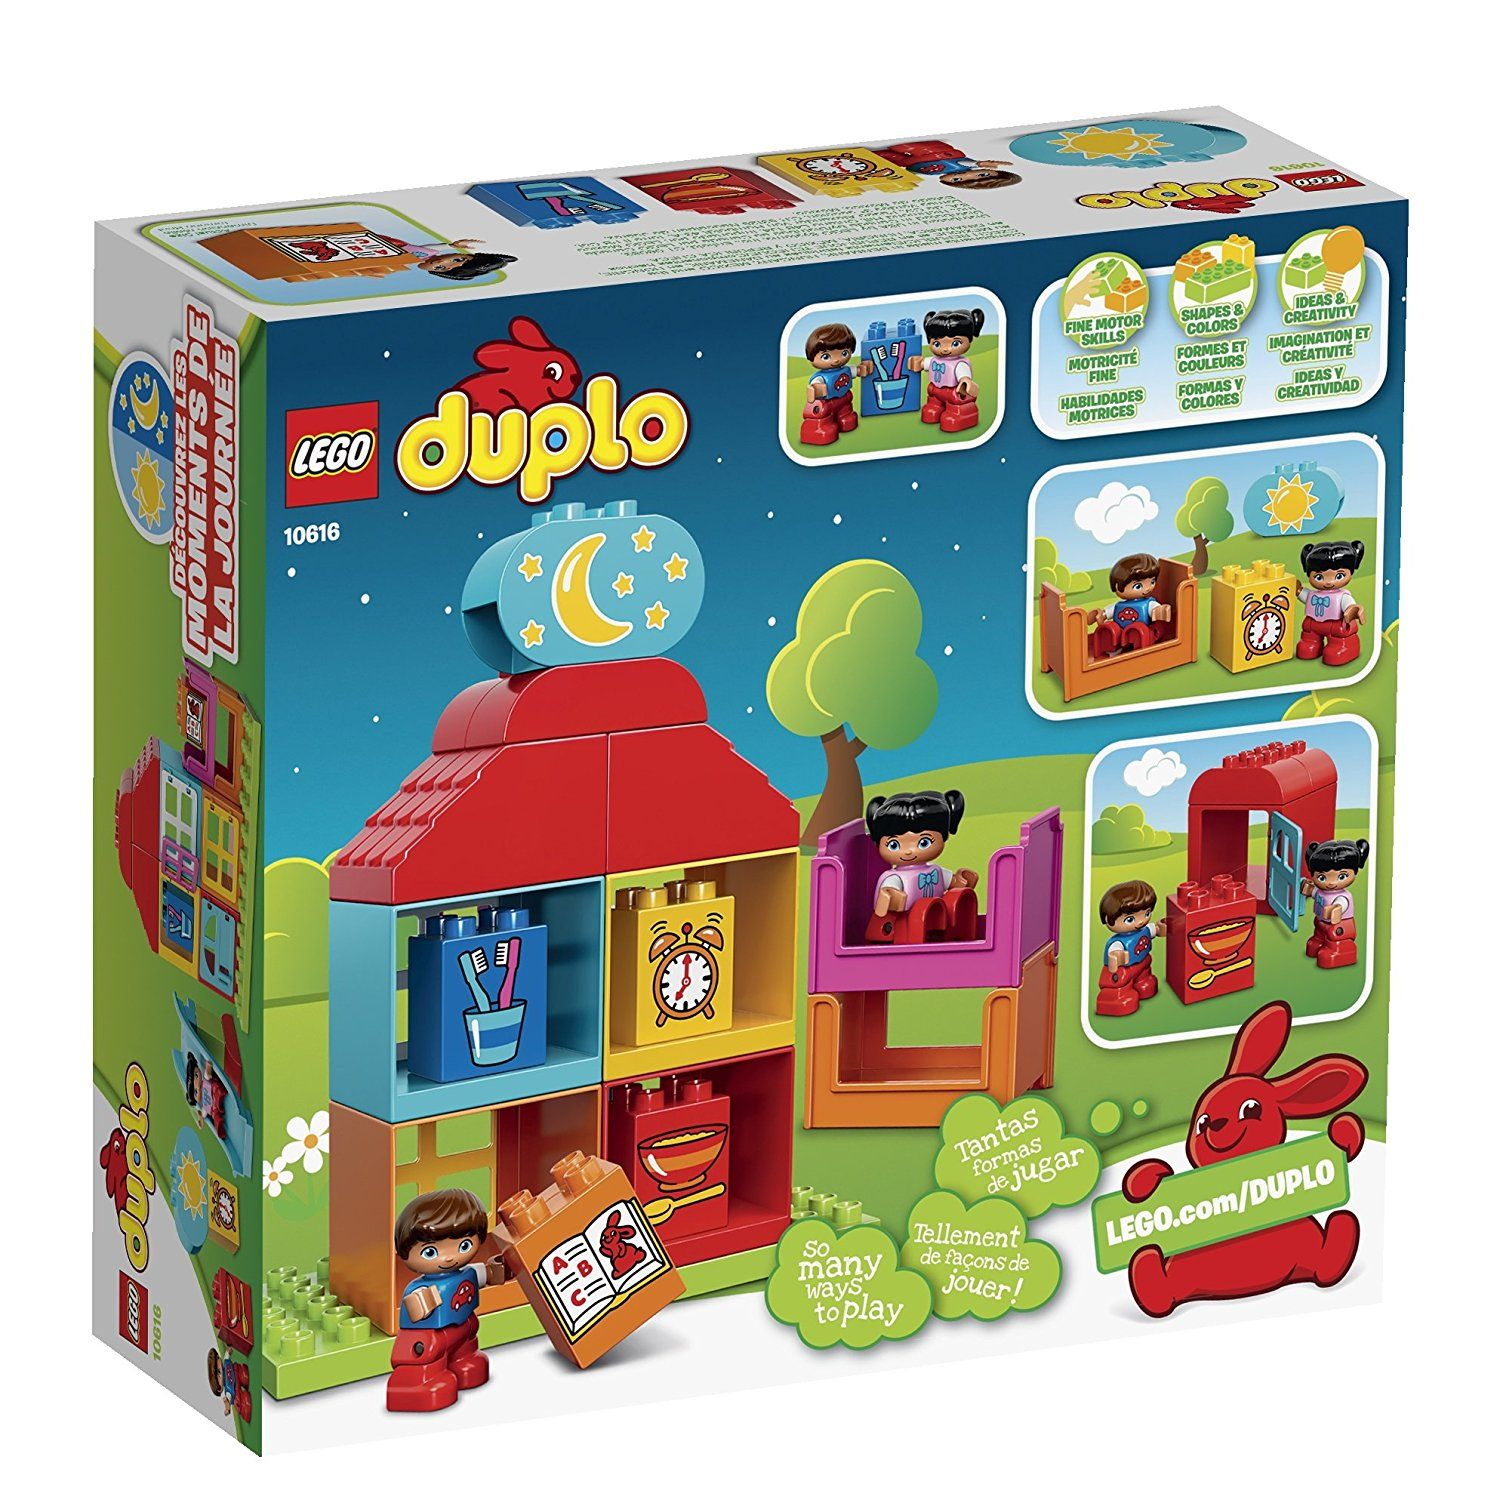 Lego Duplo My First Playhouse 10616 Toy For 1 Year Old Click On